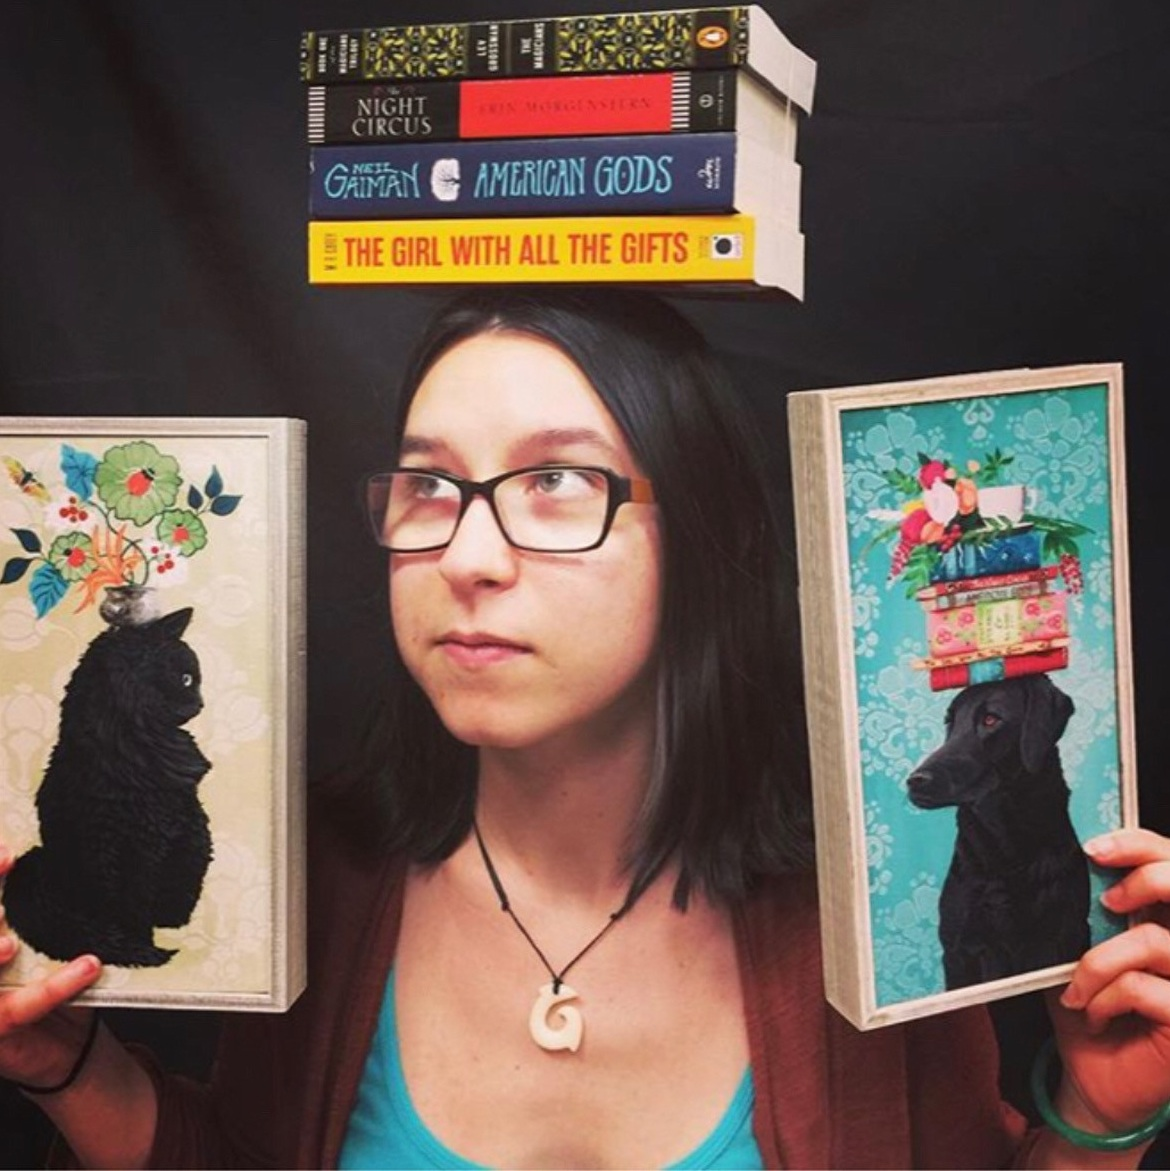 Leah - While awaiting the arrival of my Hogwarts letter I like to travel to other countries (50 so far), play with my cat, Darrow, and read books to escape the real world. From a young age, sci-fi and fantasy have been my go-to genres….